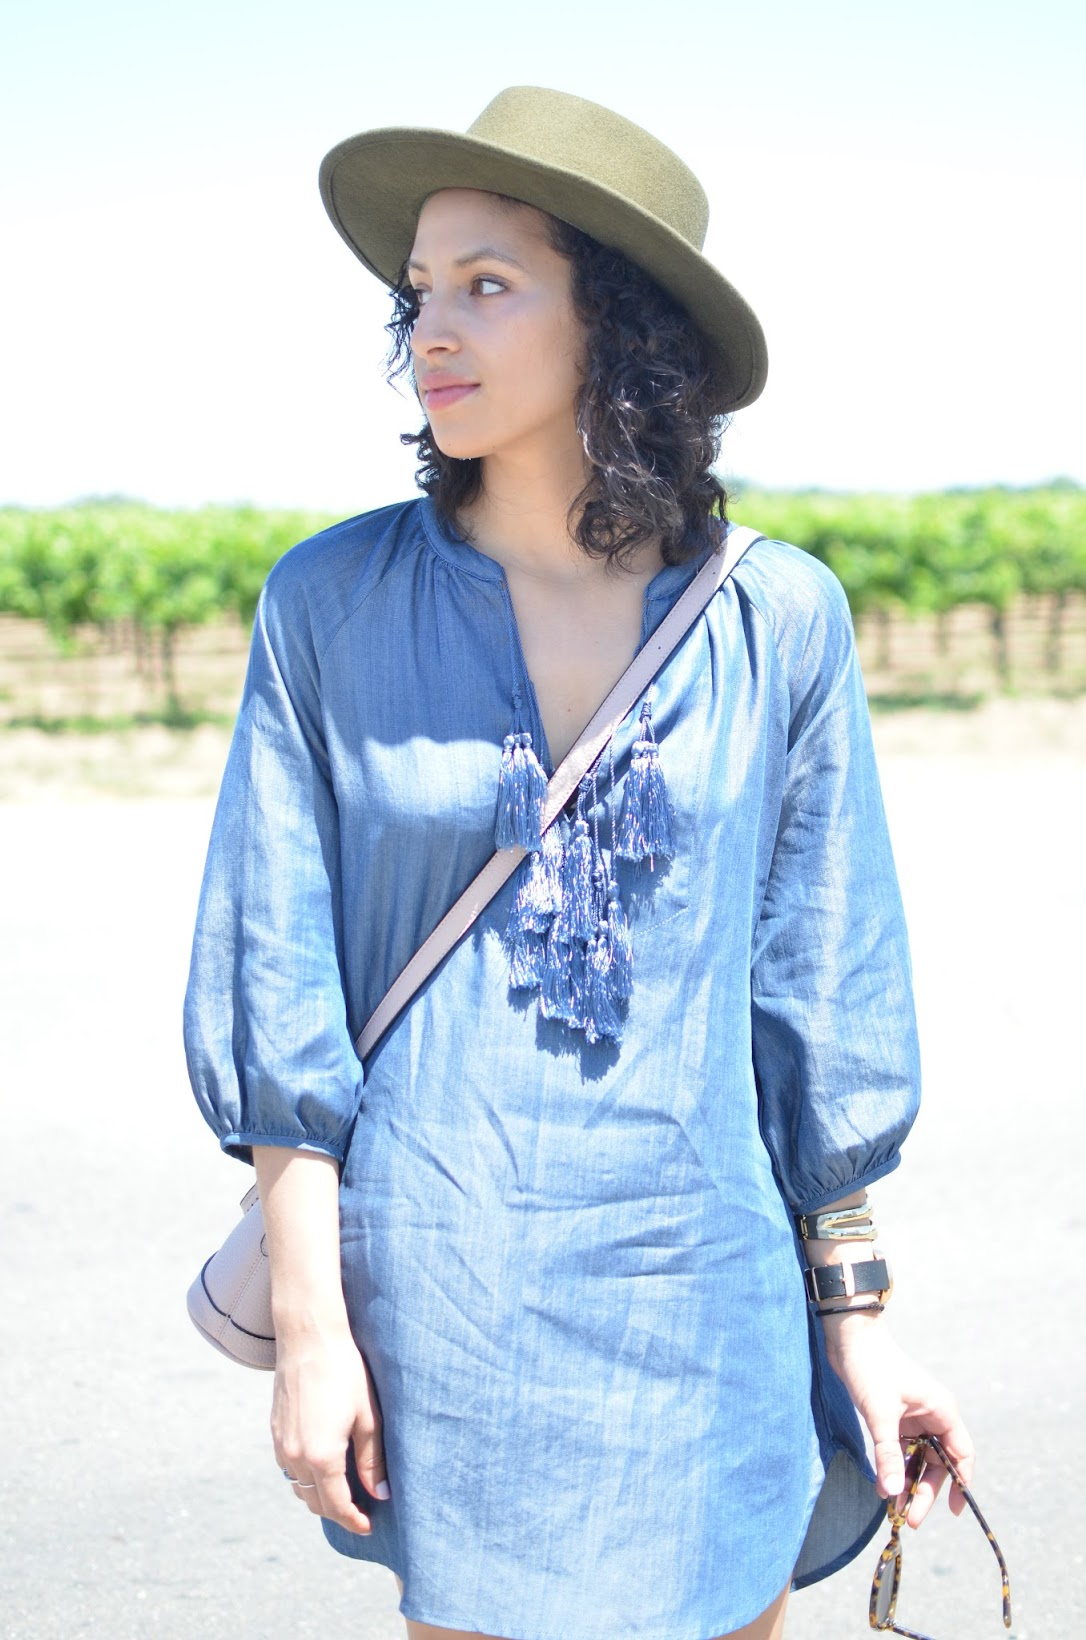 TopShelf Style, tunic, tassel tunic, SF style, Goorin Bros fedora, slide sandals, Urban Expressions, curly hair, Karen Walker Super Sunglasses, Lodi wine